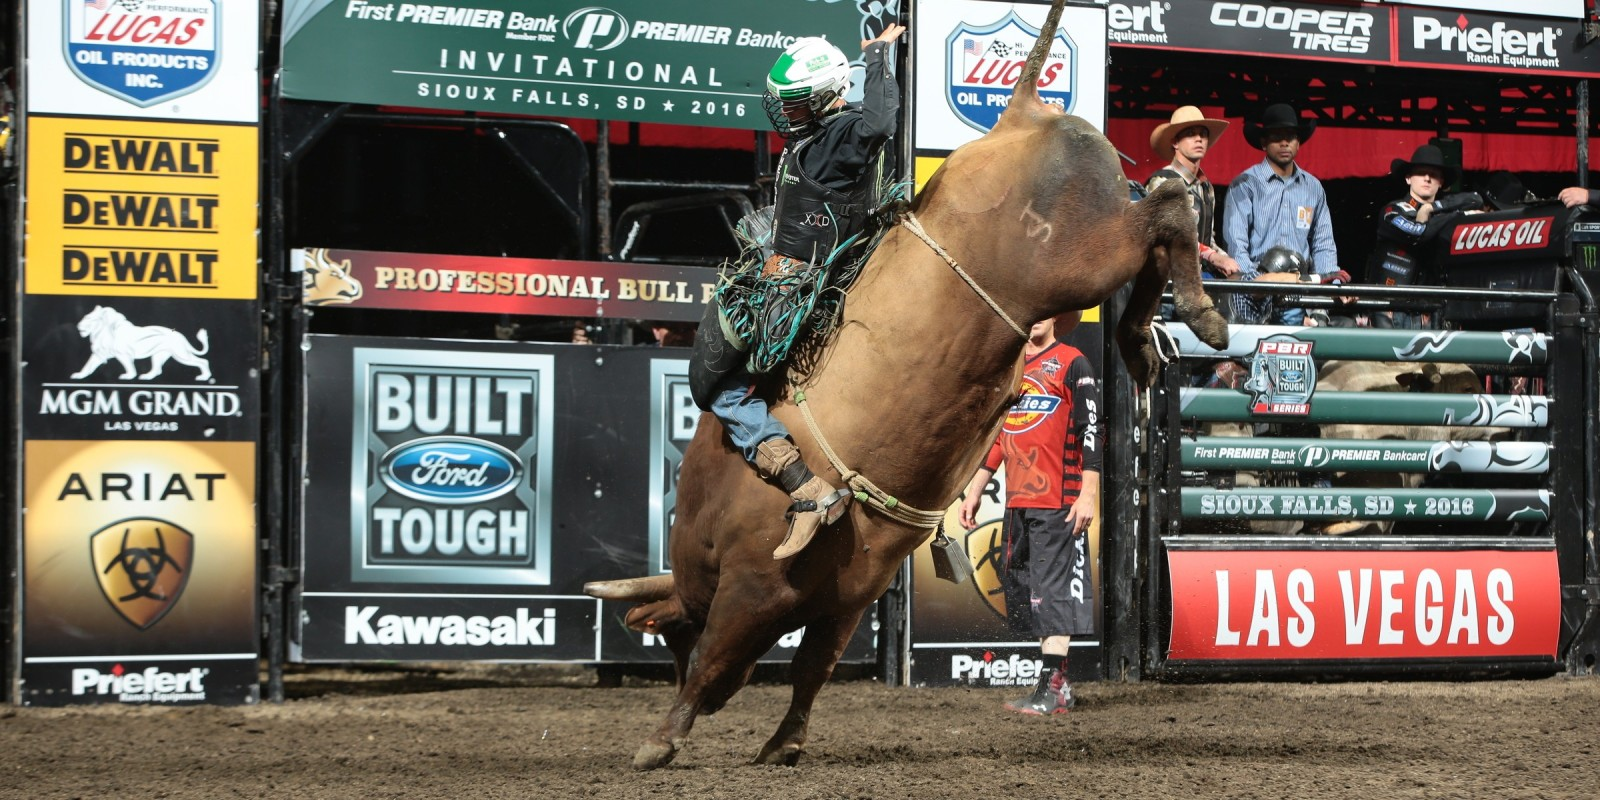 Gage Gay rides during the Sioux Falls Built Ford Tough Series